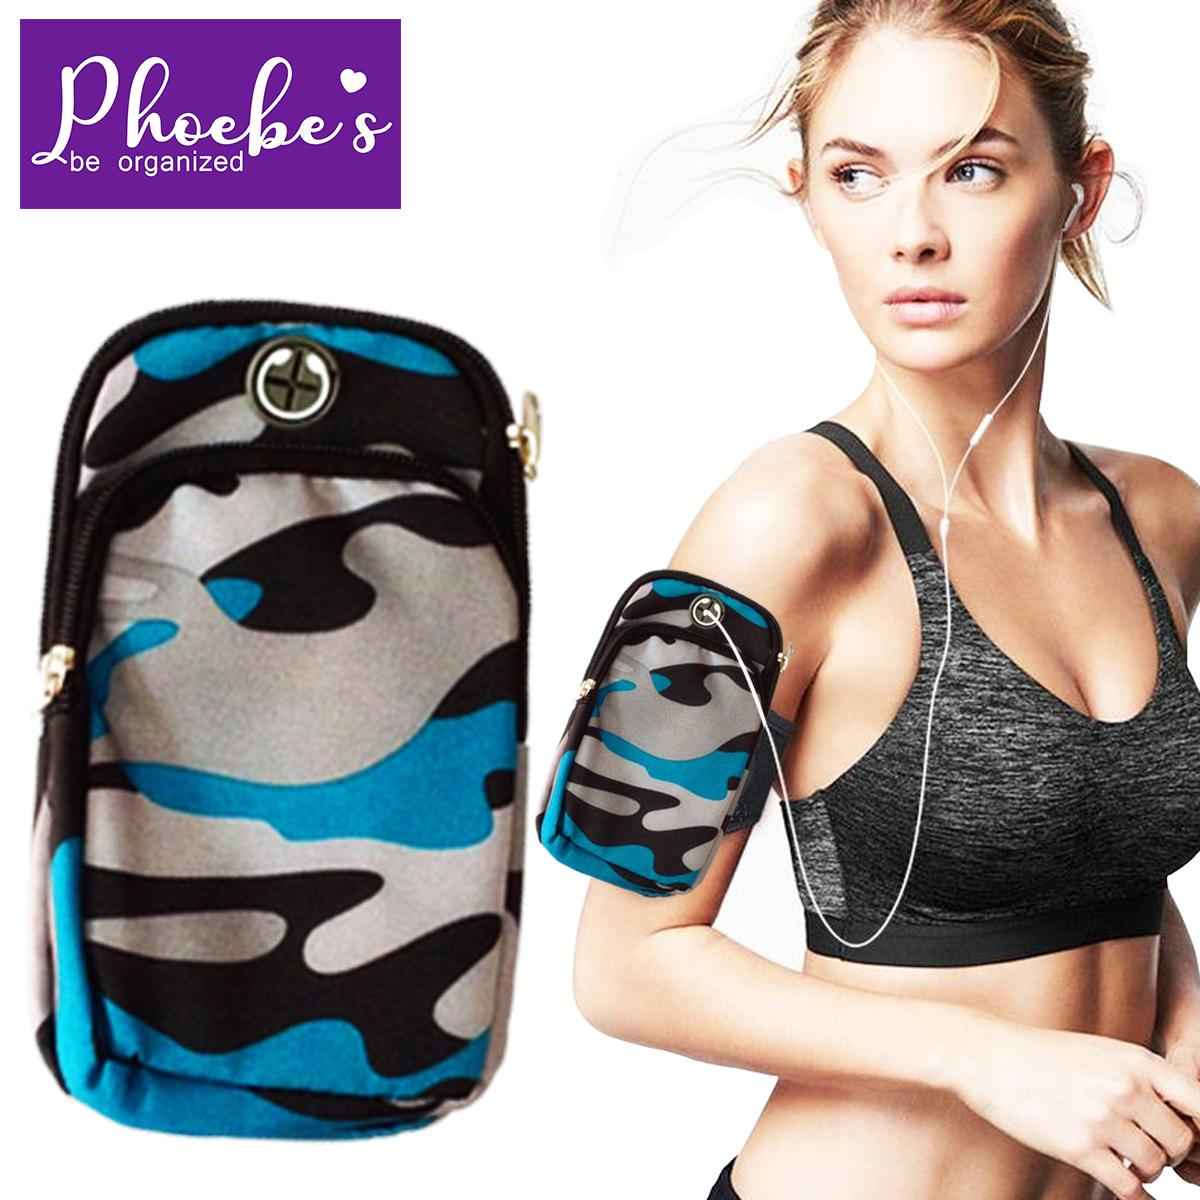 9d577695f56d Phoebes Camouflage Multipurpose Sports Adjustable Water resistant Armband  use for Fitness Jogging Hiking Cycling Exercise Gym Outdoor Sports  Cellphone ...